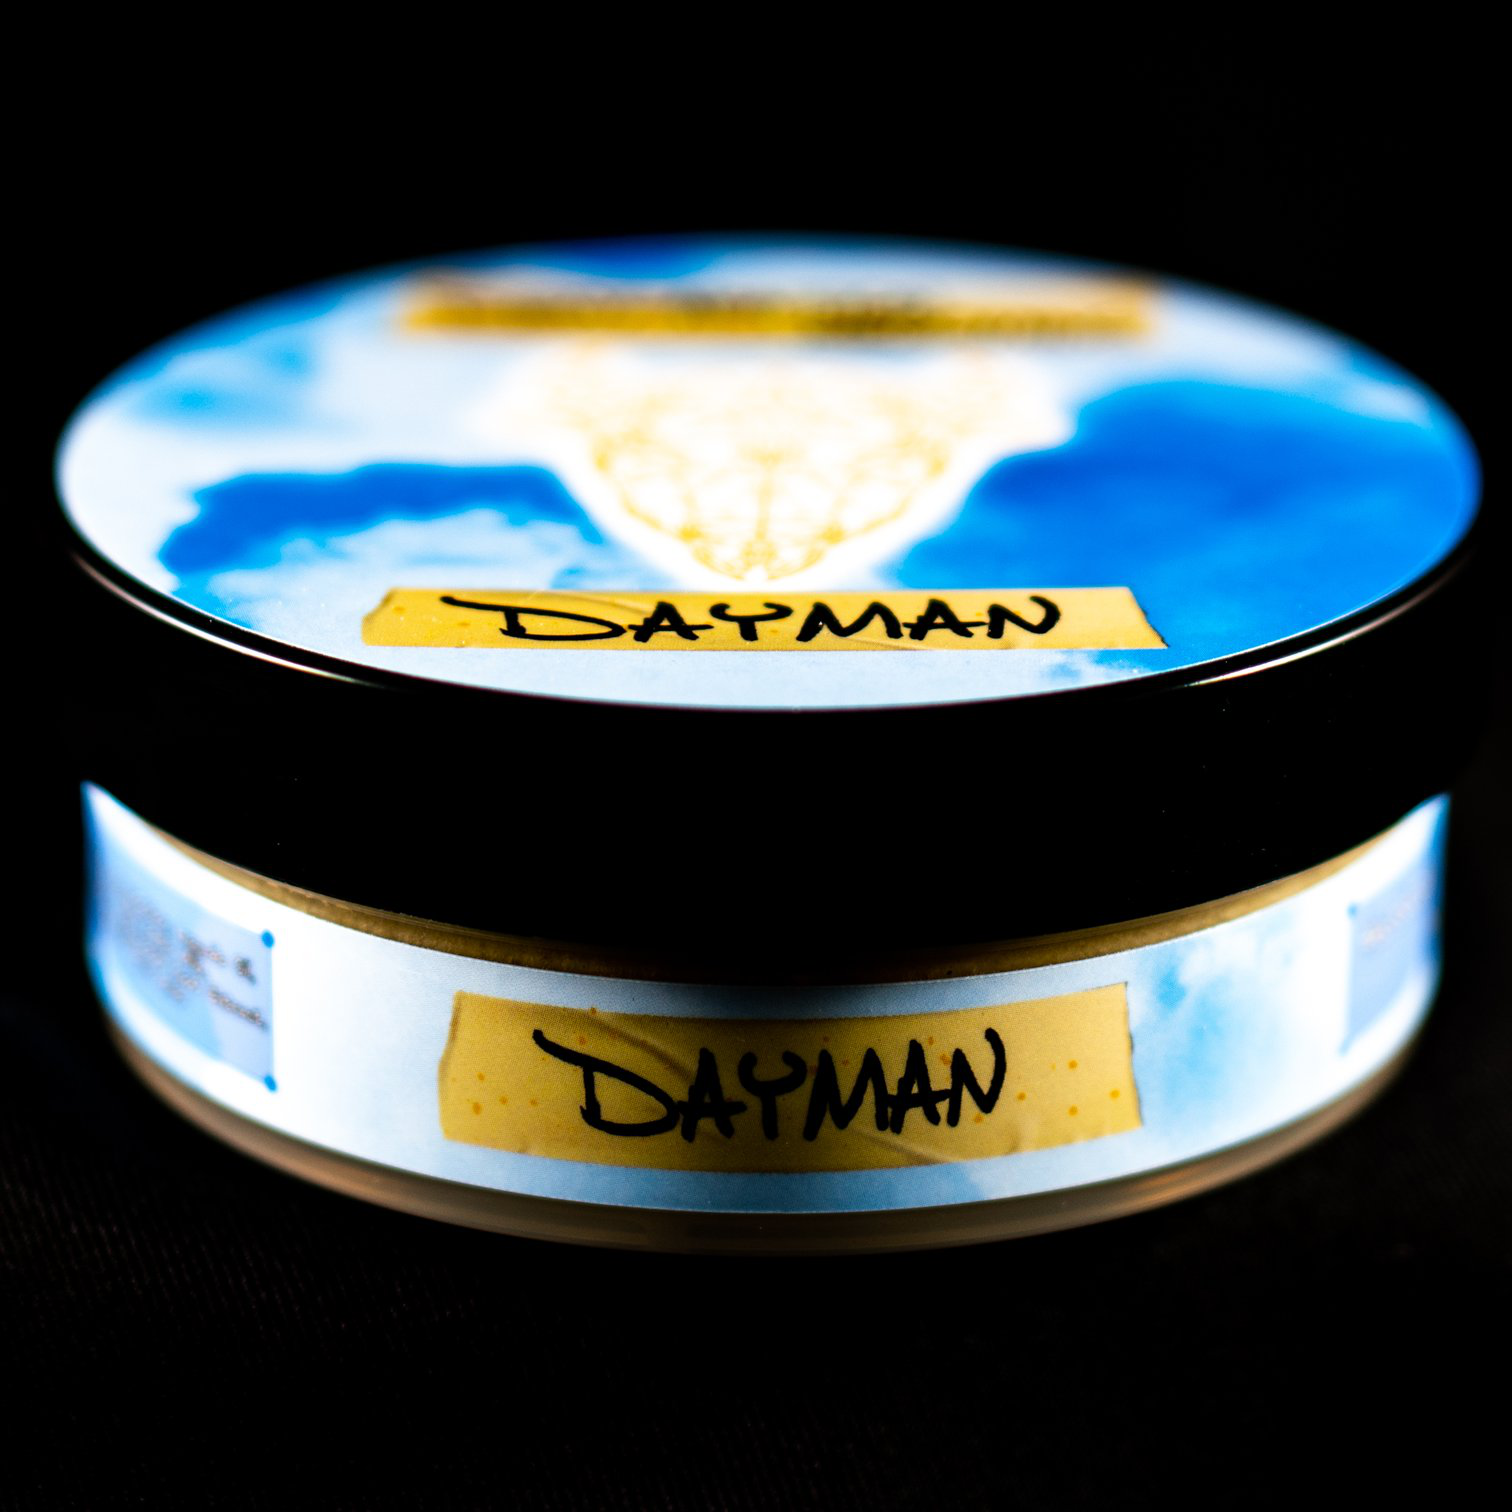 Declaration Grooming - Dayman - Soap image